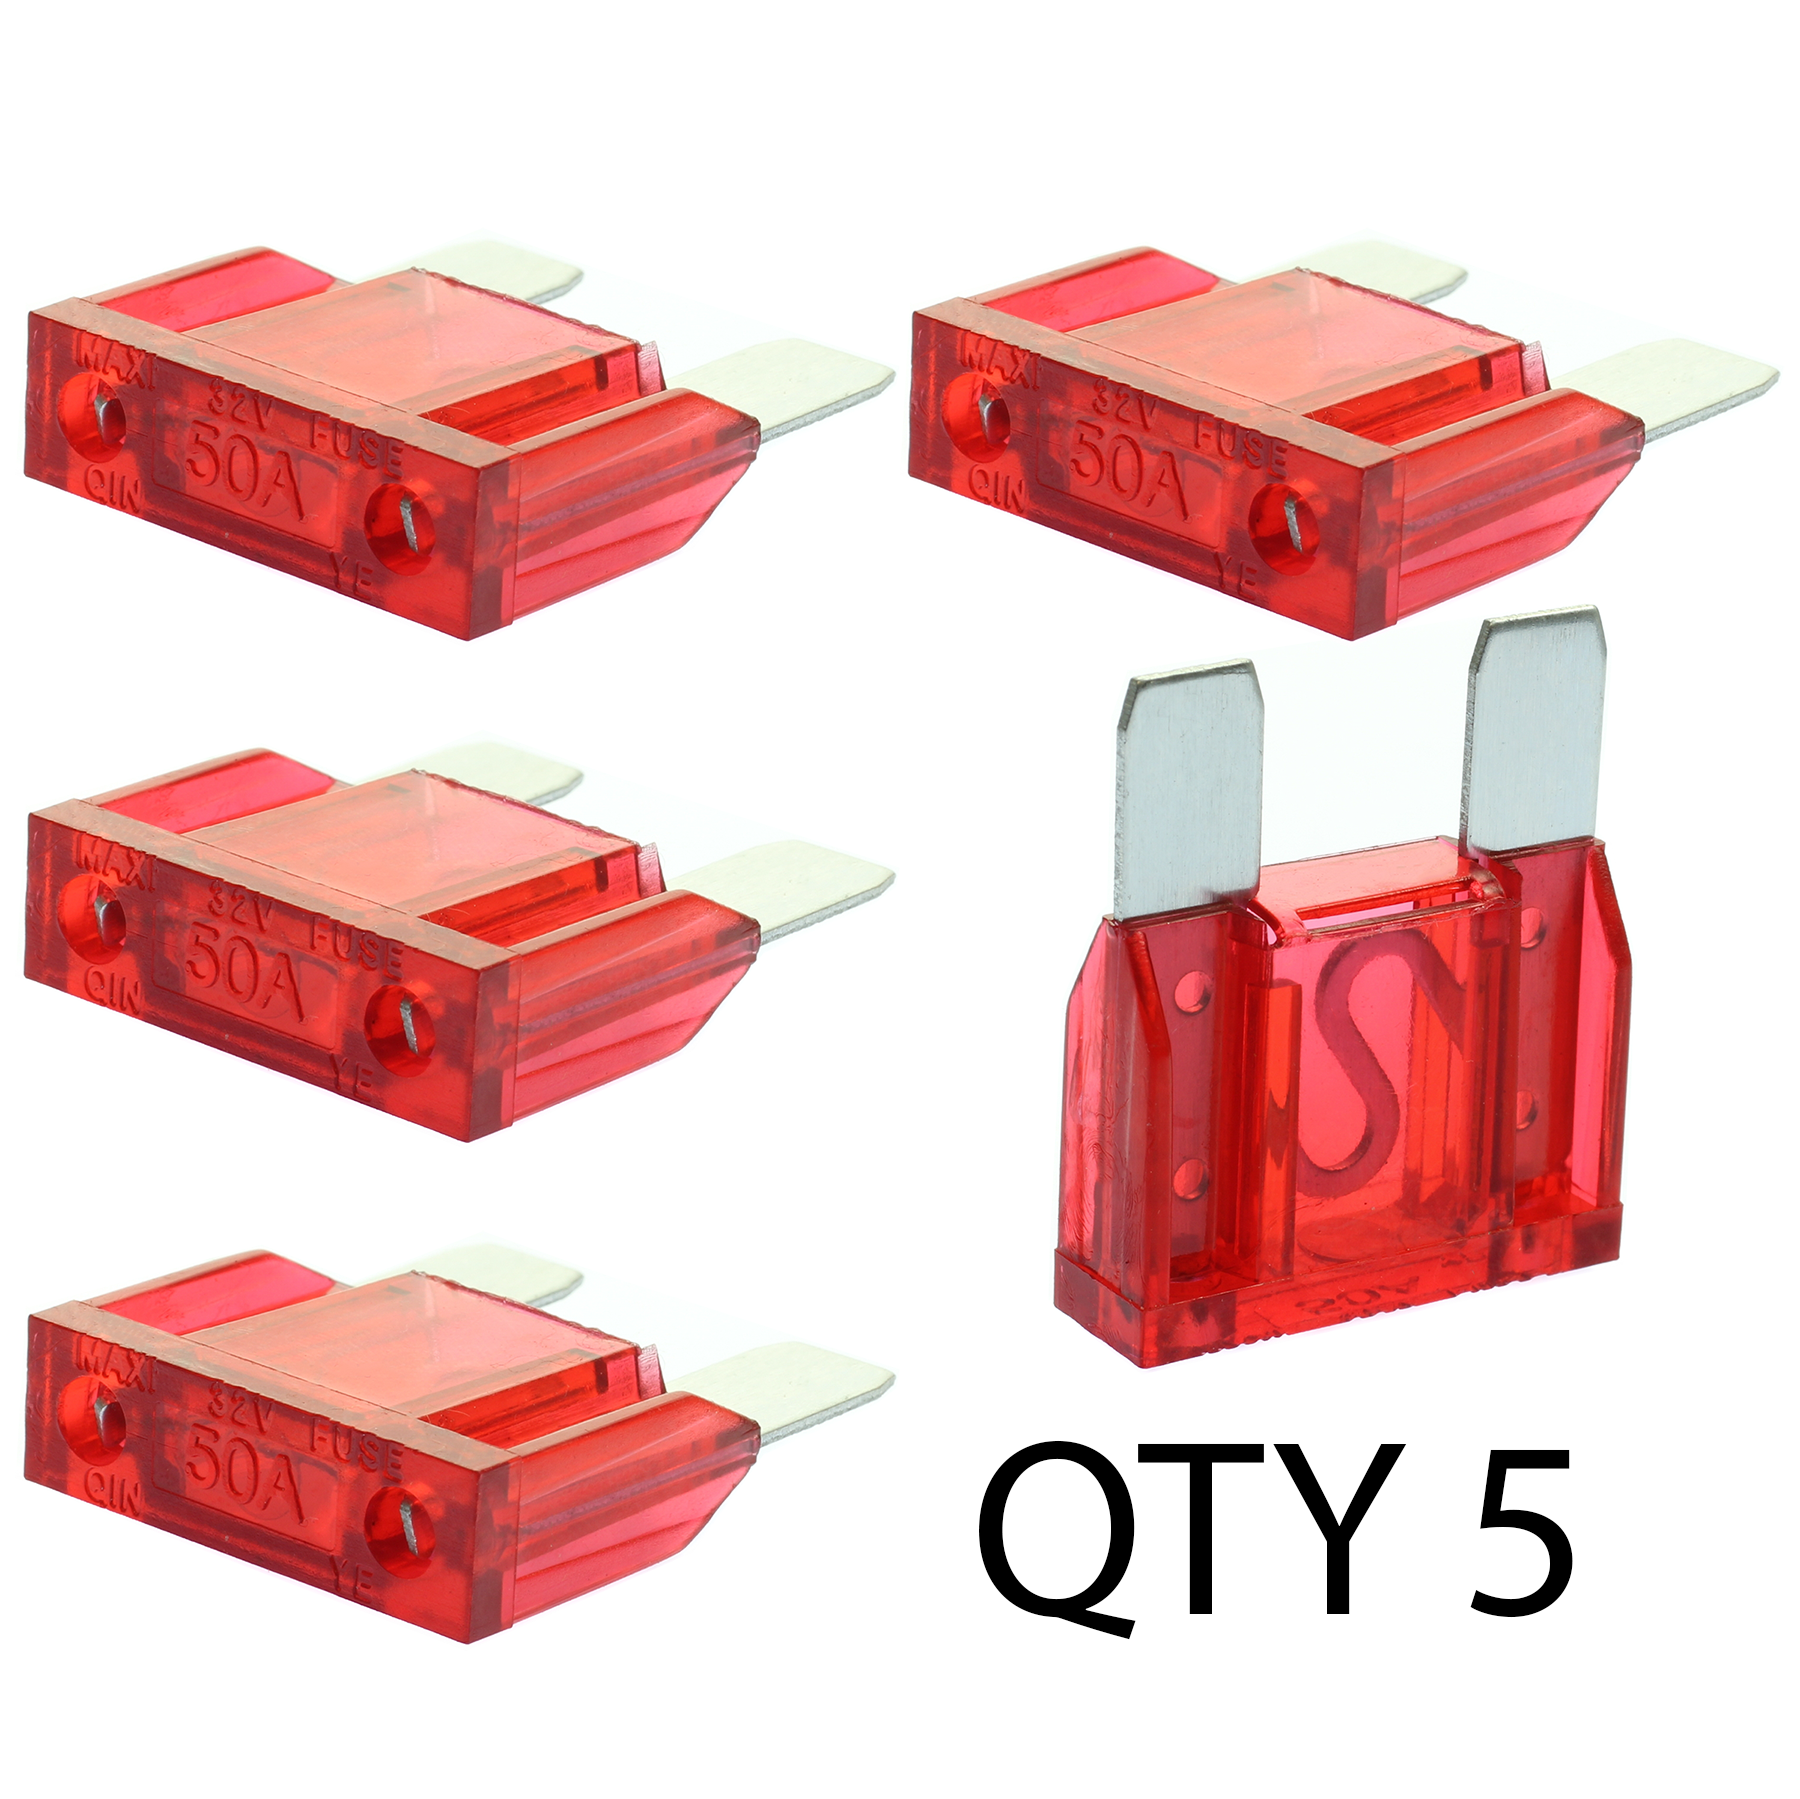 (5) 50 Amp Maxi Fuse by Voodoo Car Audio For Fuse holder Qty 5